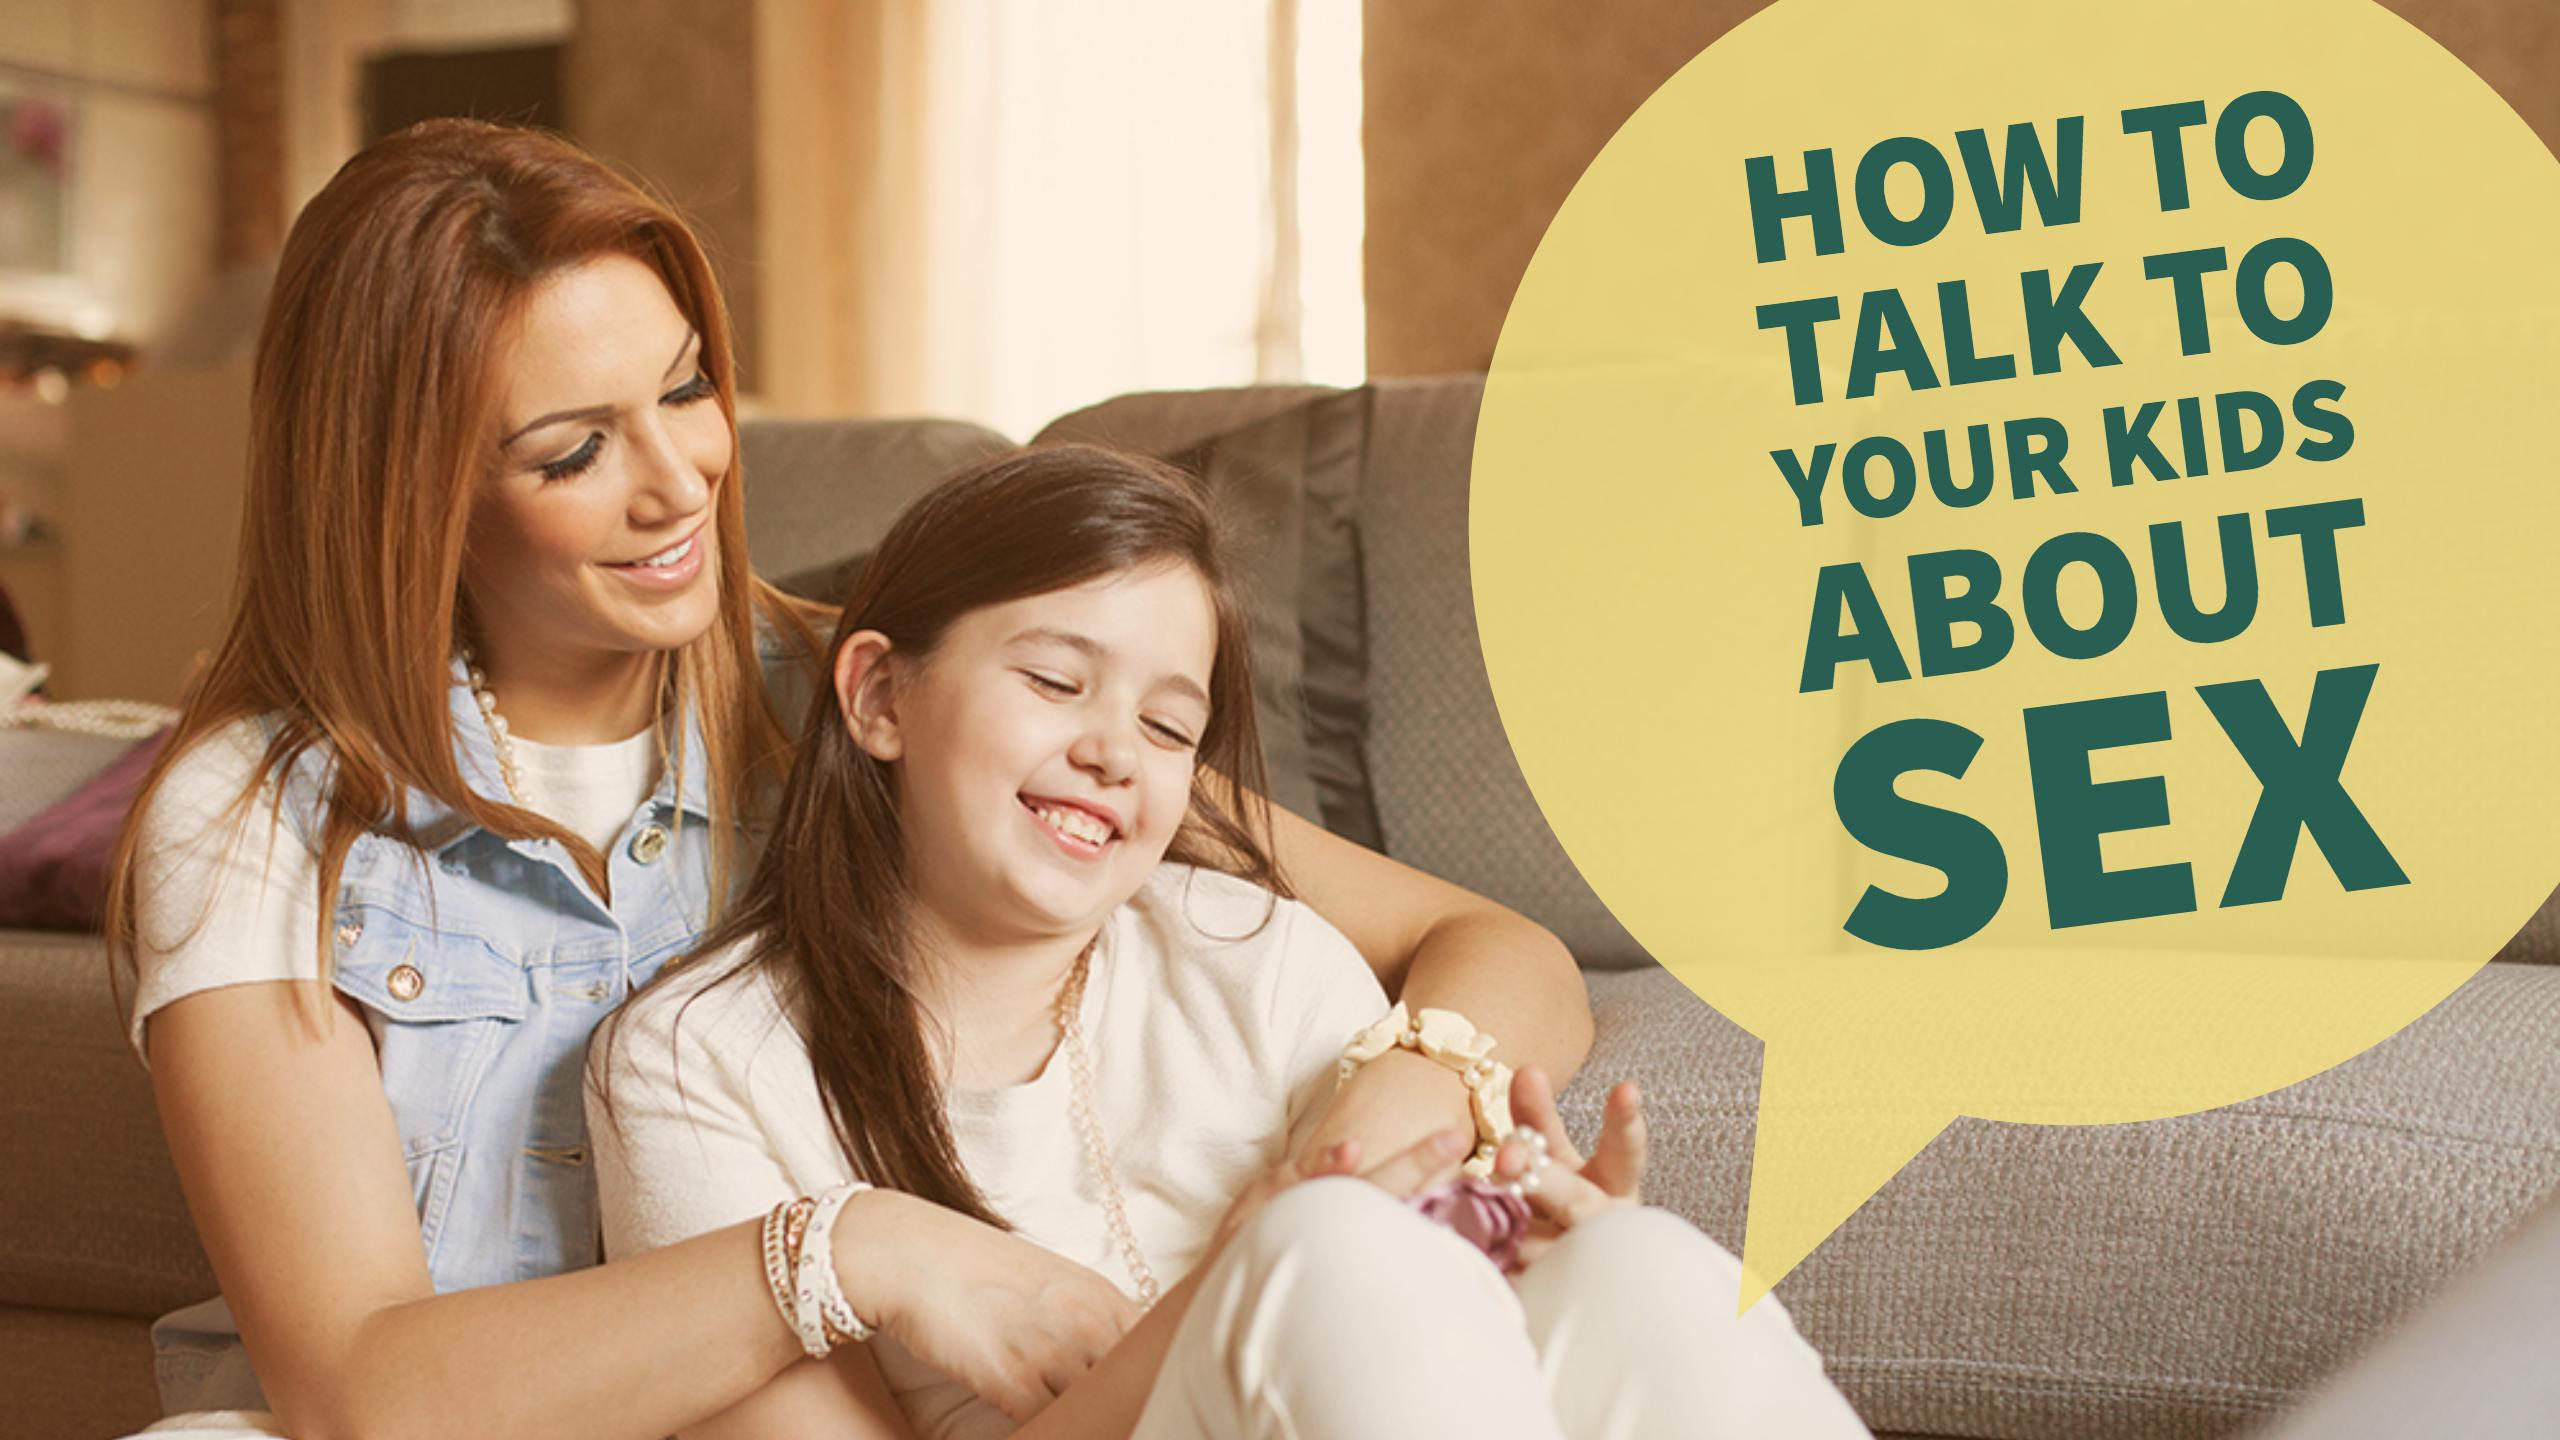 How to Talk to Your Kids About Separation Divorce forecasting